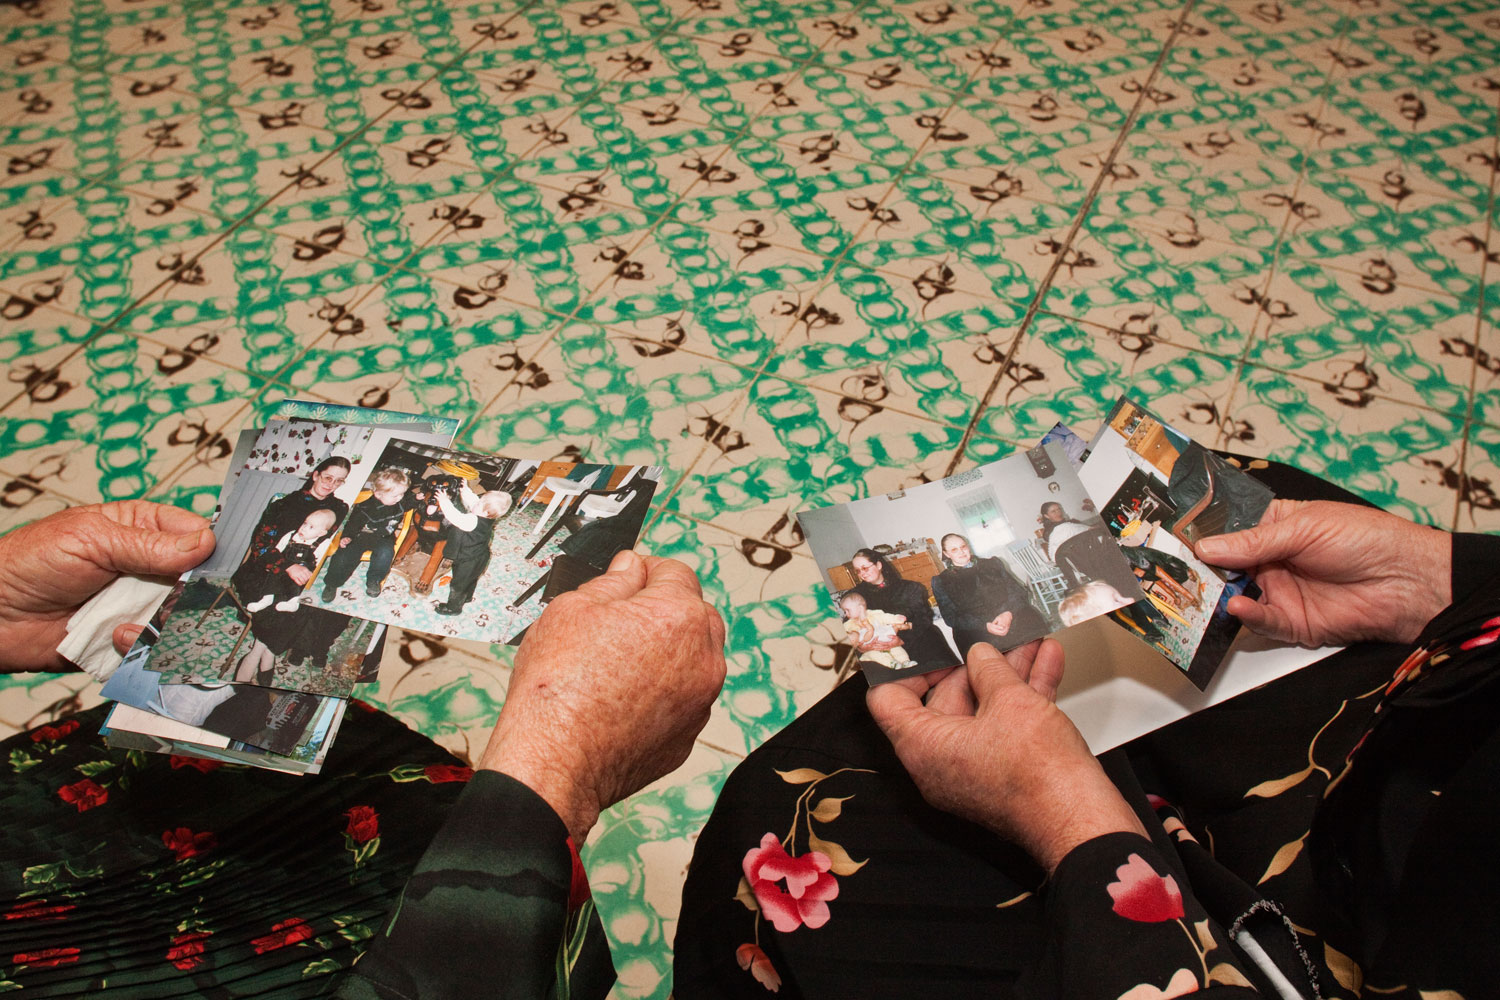 Sharing pictures. Some women showed me pictures they had taken of their family. Nuevo Ideal, Durango, Mexico, 2010